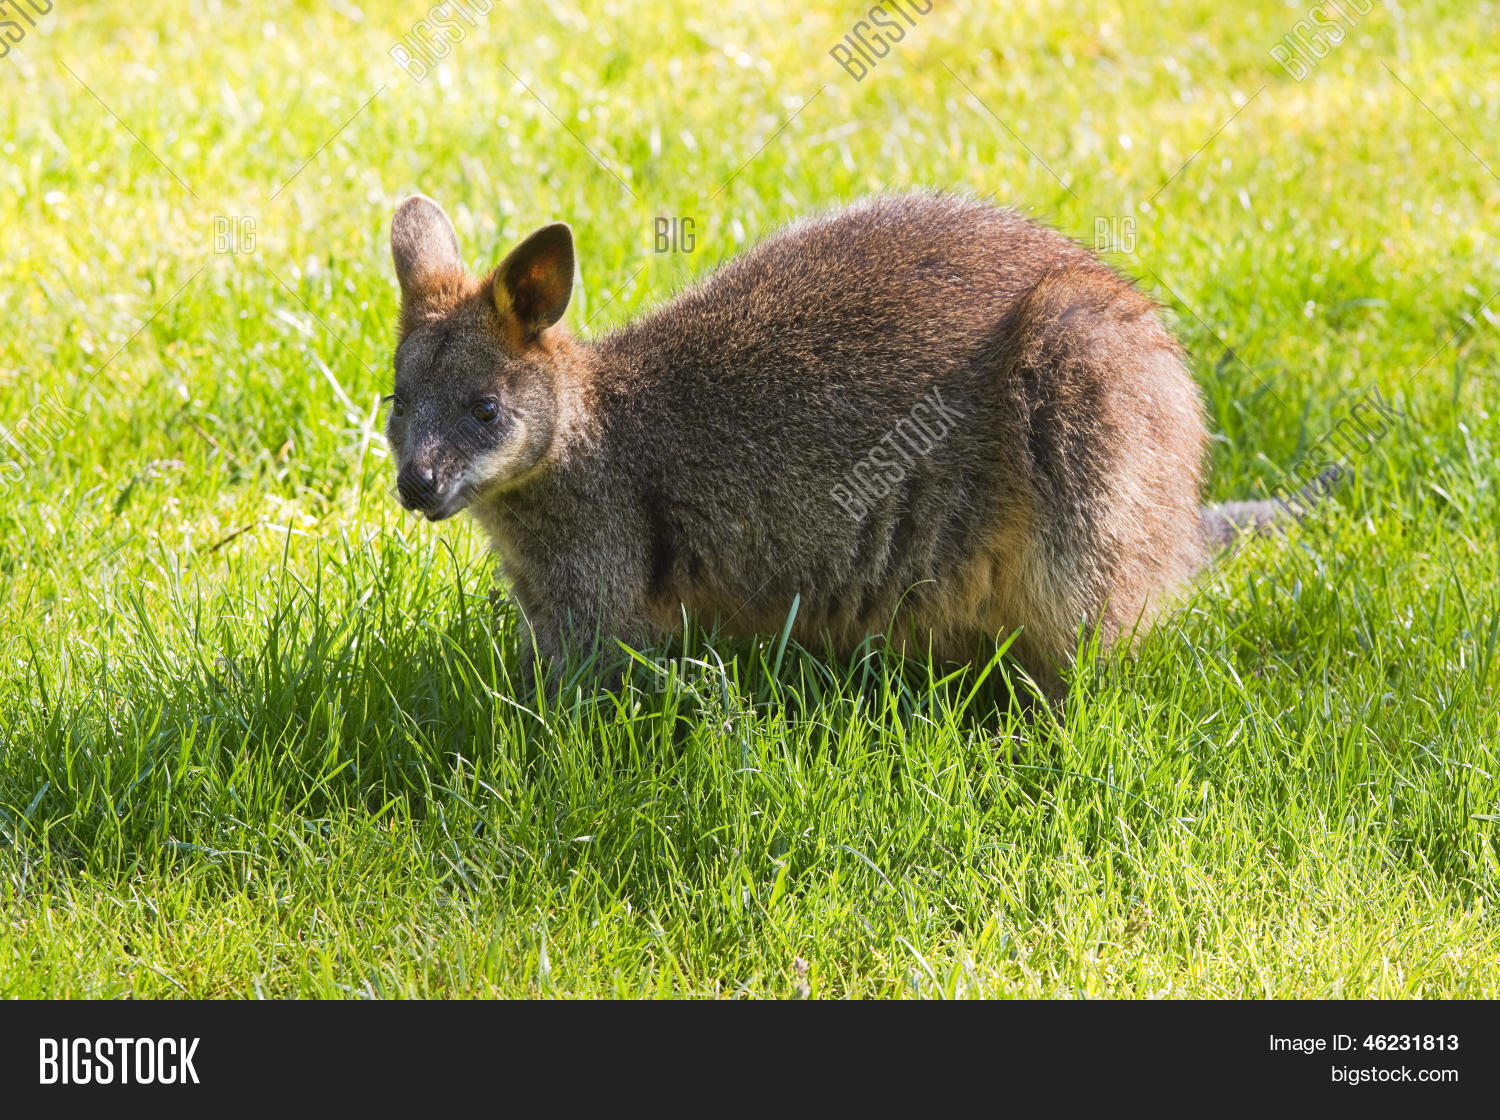 Swamp Black Wallaby Image Photo Free Trial Bigstock